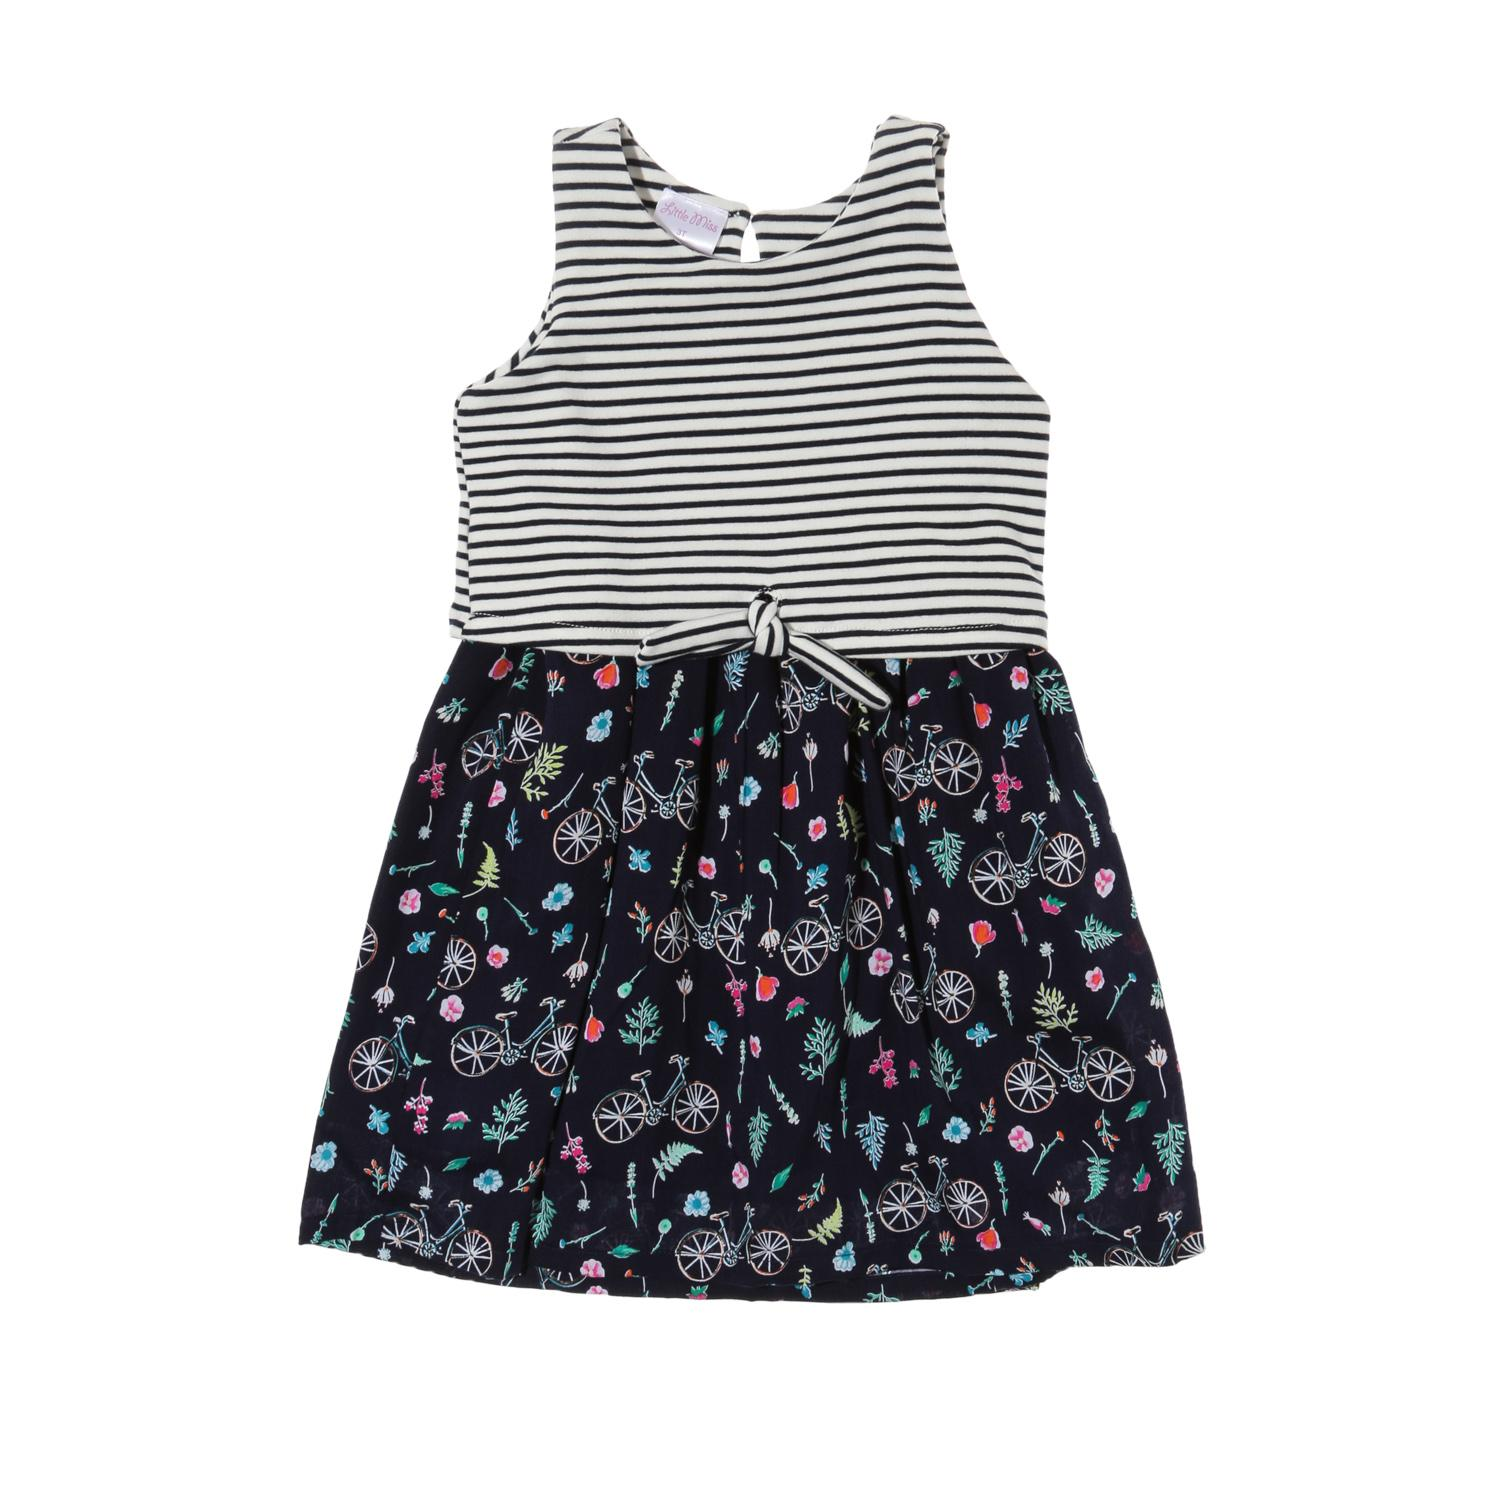 20d20aa1c Girls Dresses for sale - Baby Dresses for Girls Online Deals ...